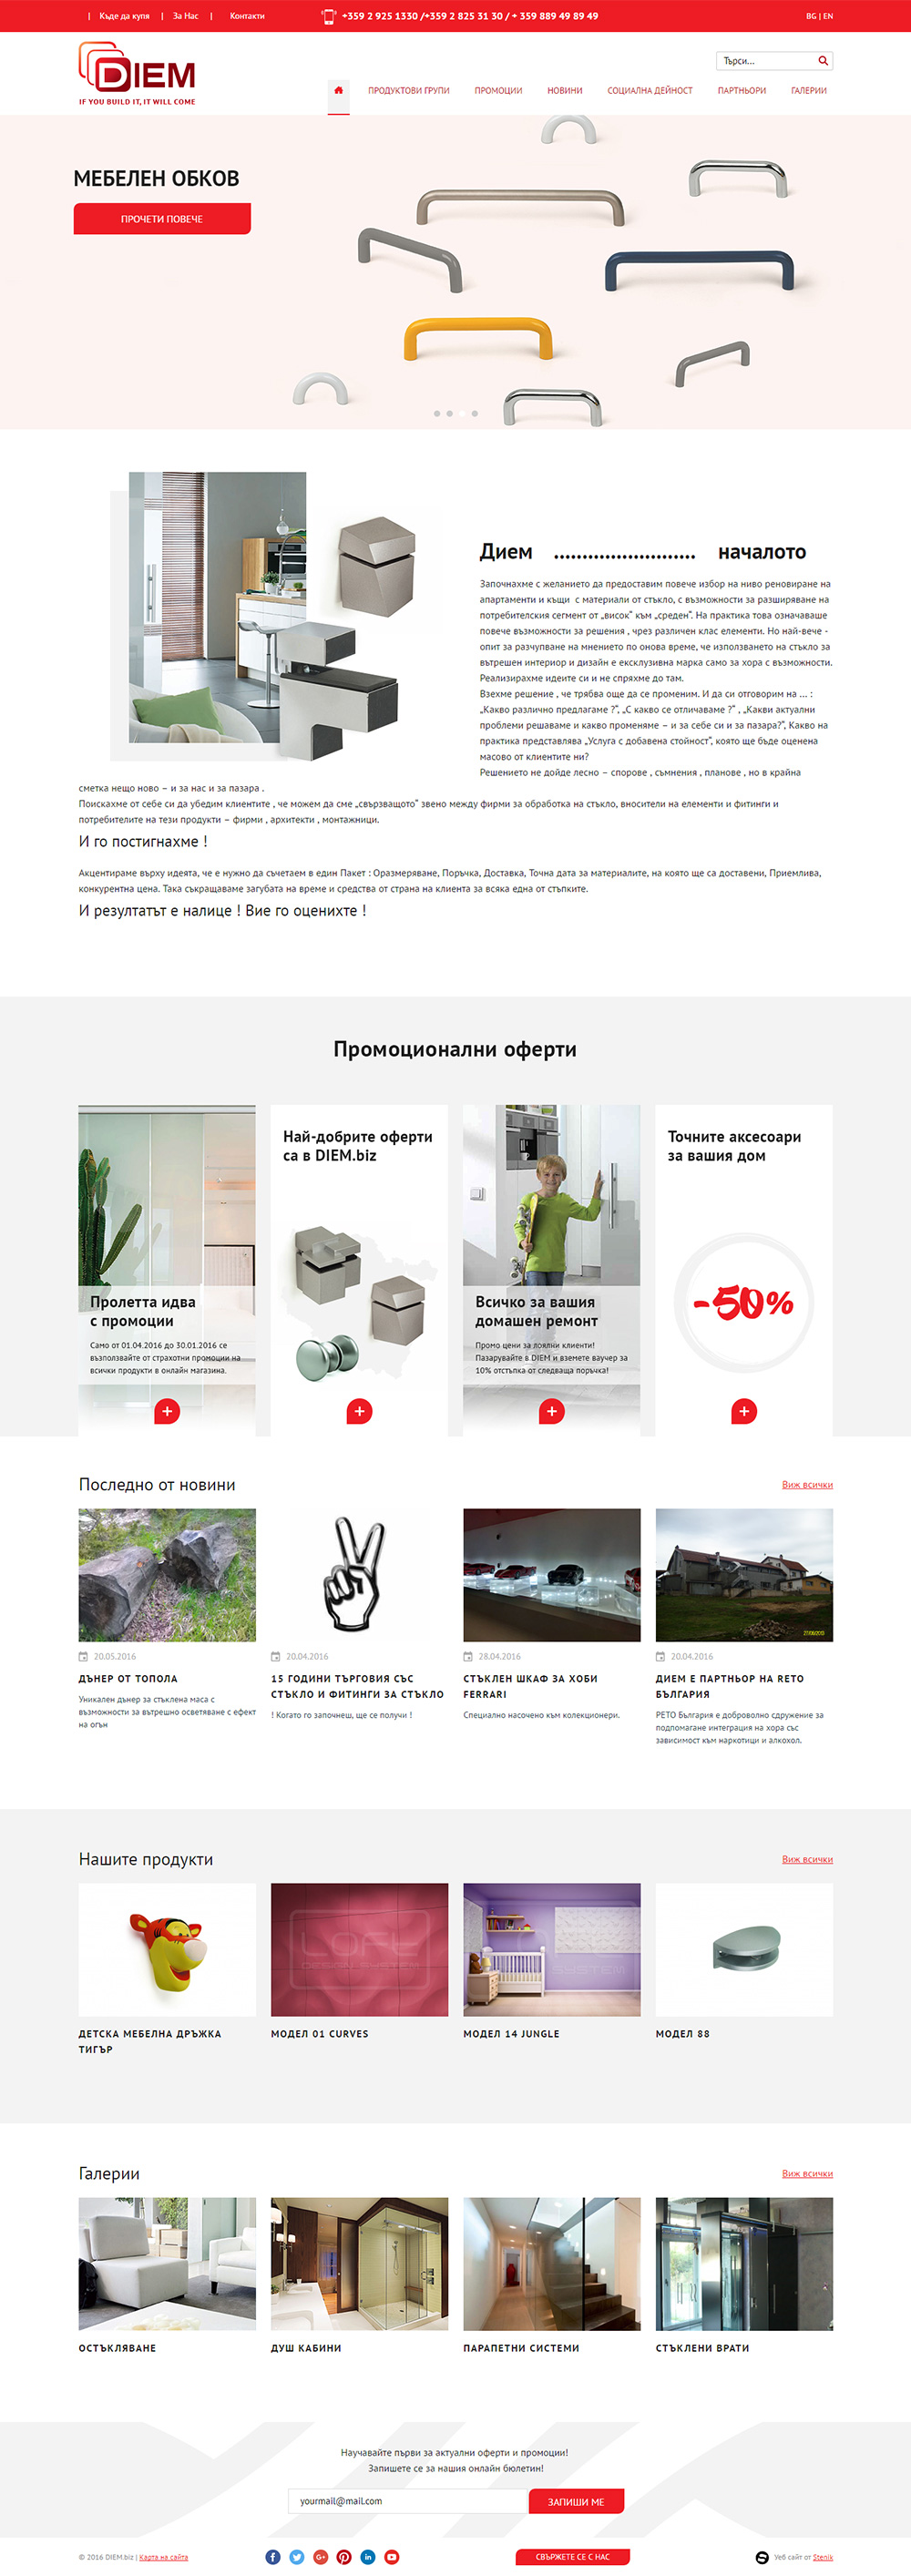 Web site for Diem, Diem - Web Sites, Stenik, StenikCMS